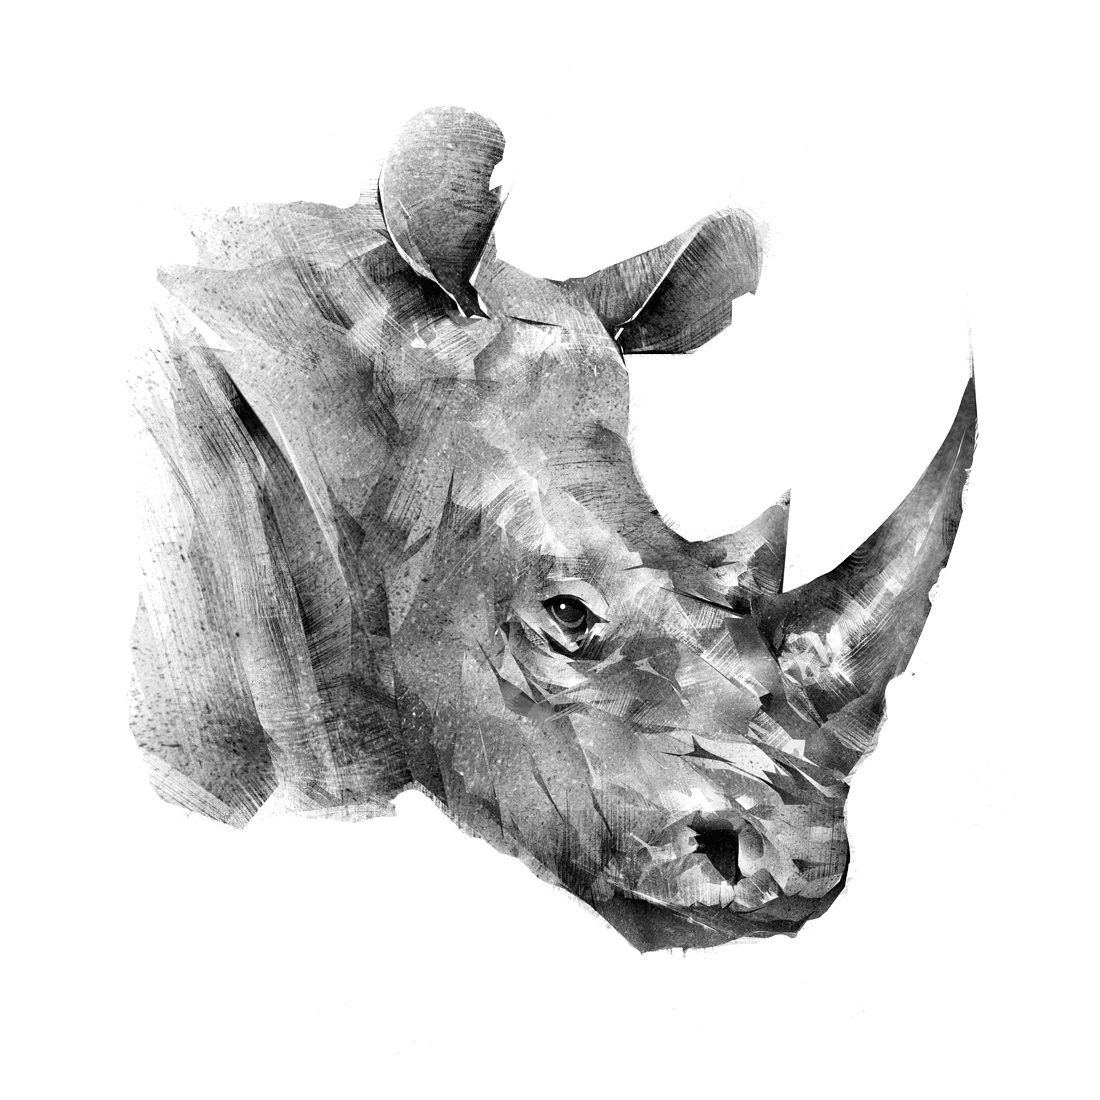 Rhino Innovations Group